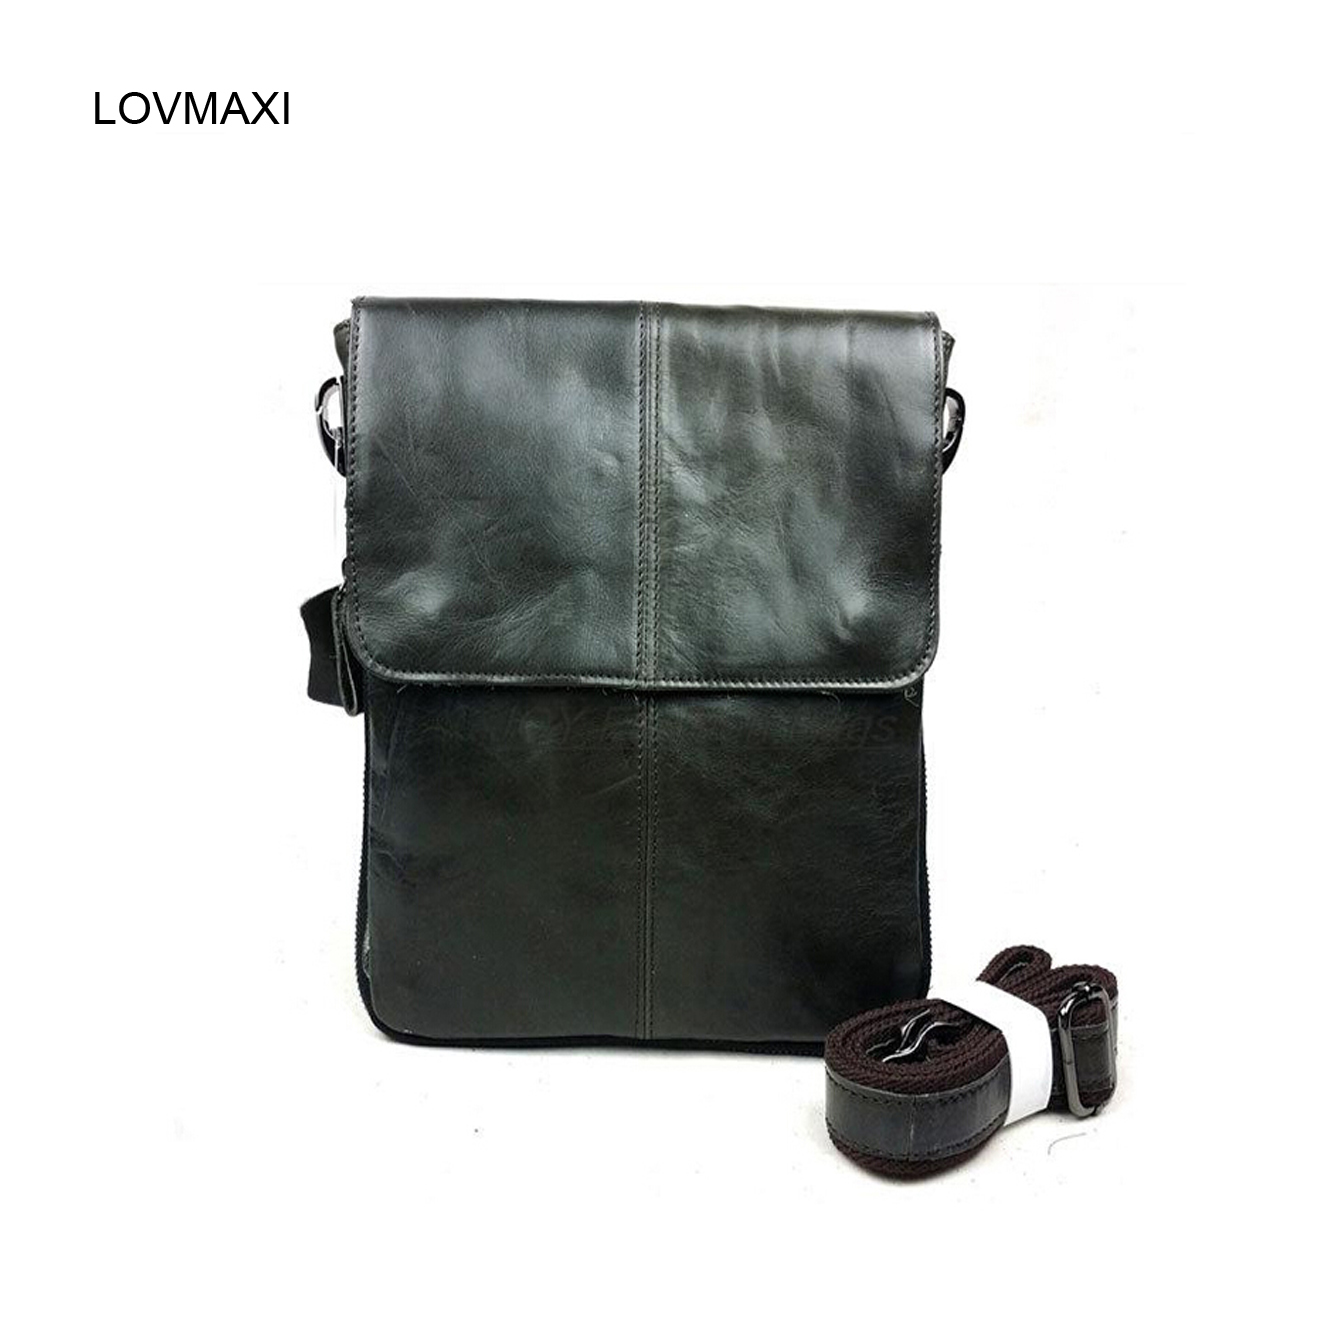 LOVMAXI Men's cow leather shoulder bags Male causal messenger bags Coffee first layer of genuine vintage handbags small bag ic200pwr102e used in good condition with free dhl ems